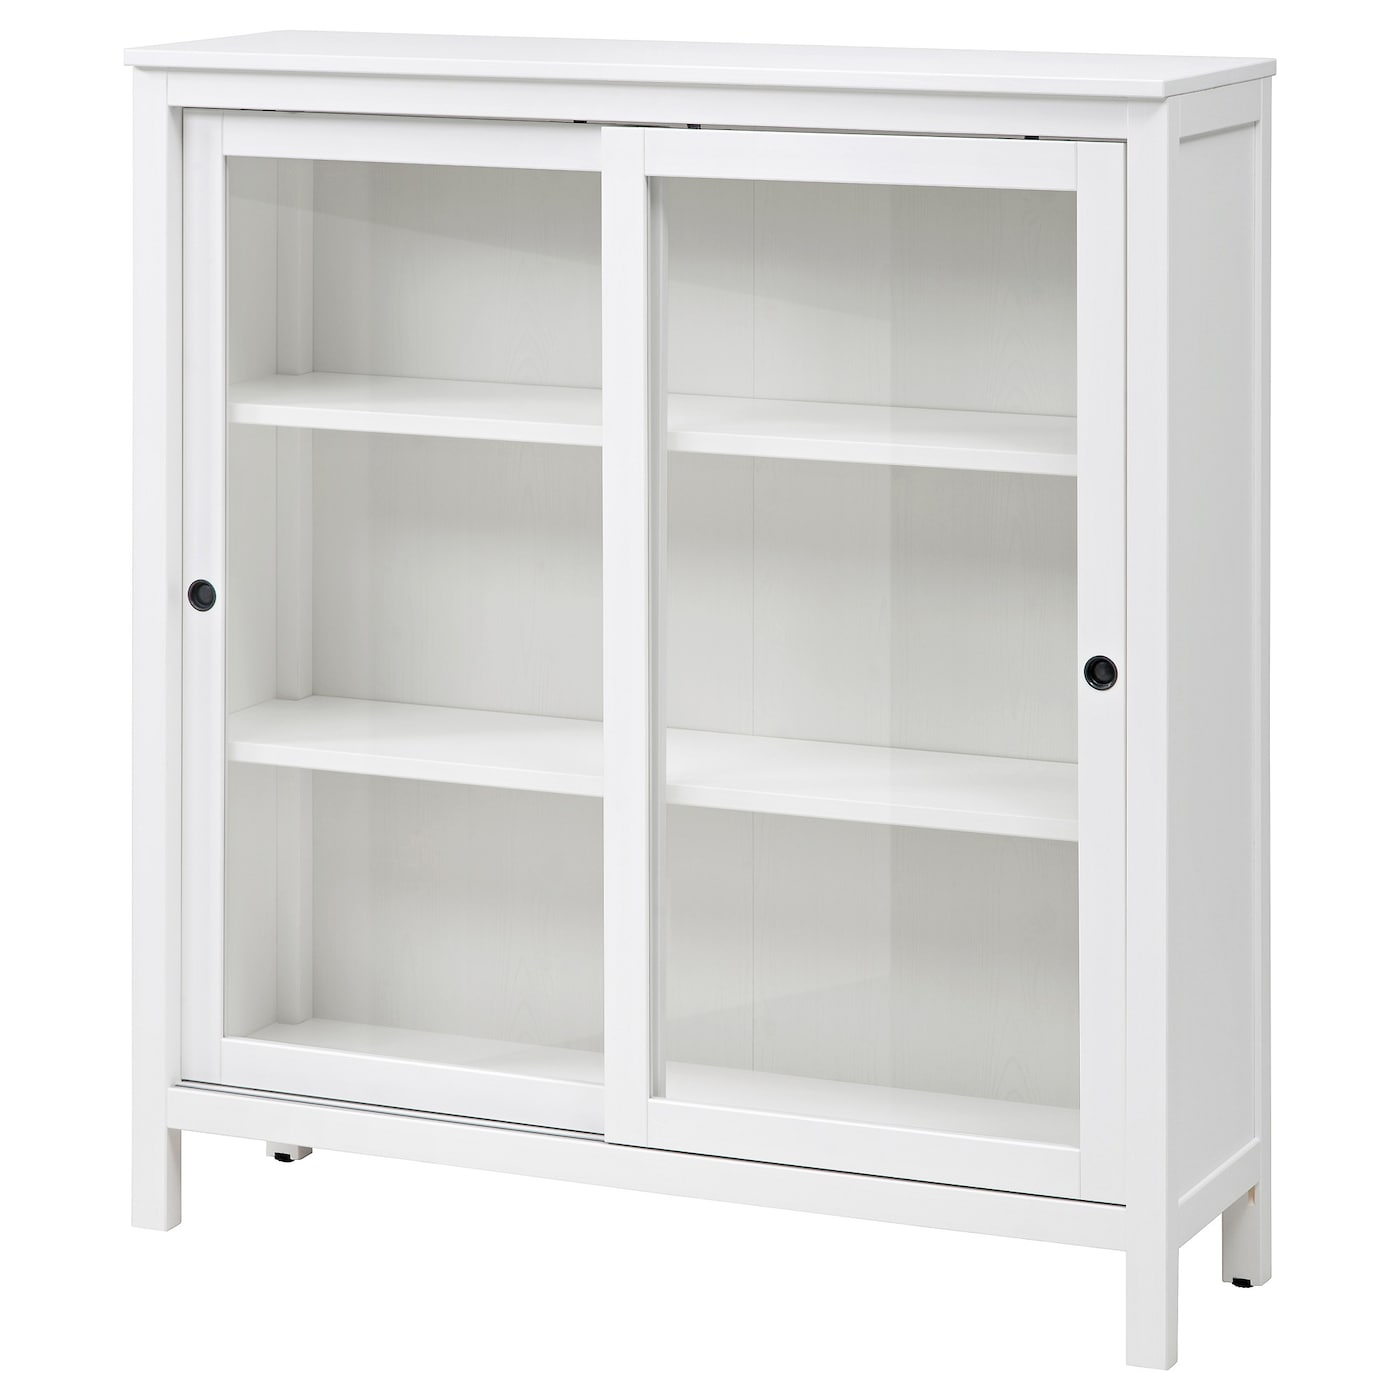 Awesome Ikea Glass Door Cabinet Plans Free